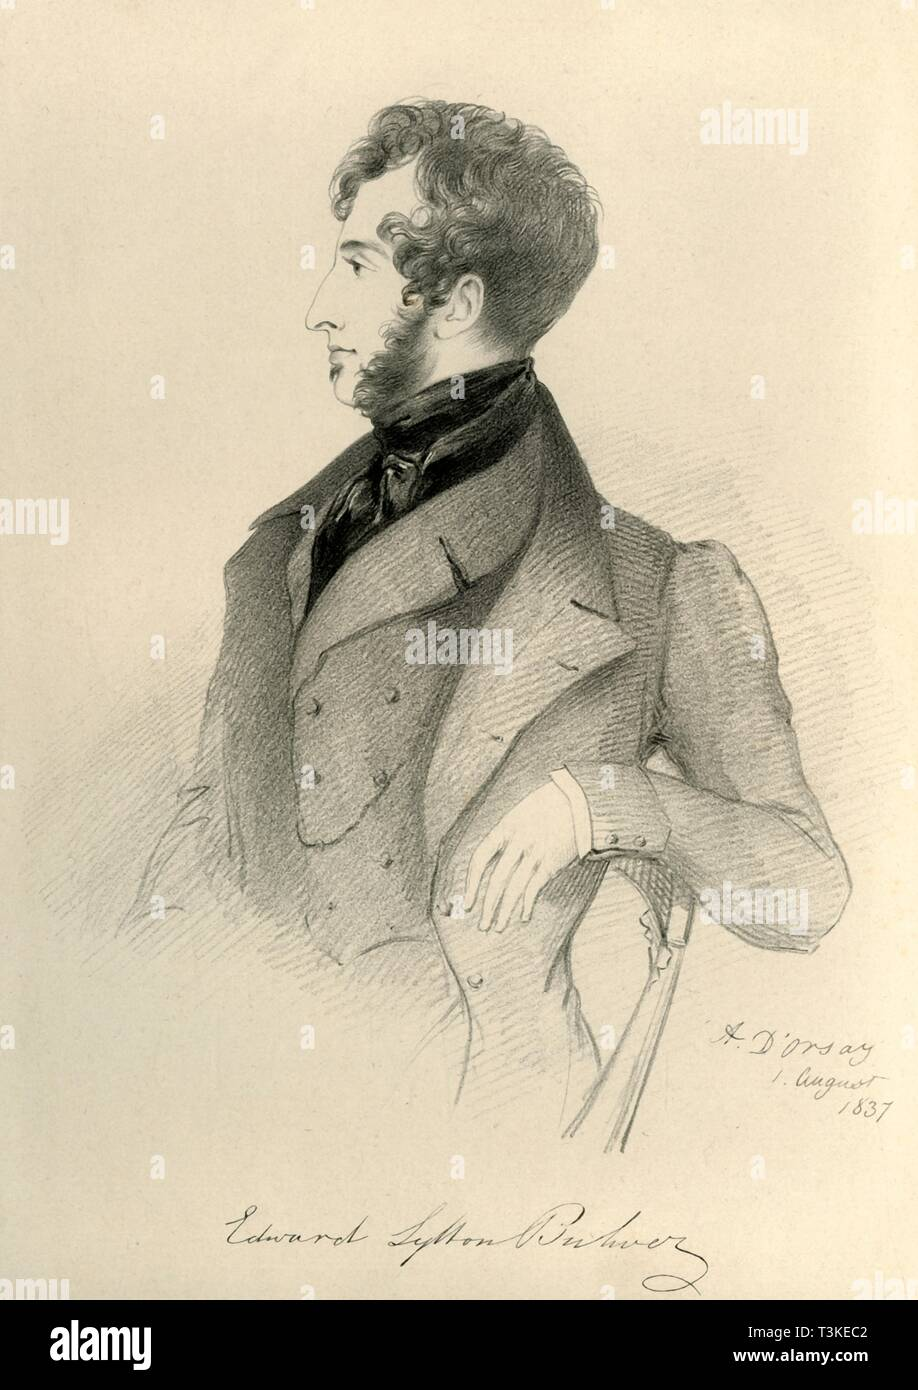 """''Edward Lytton Bulwer', 1837. Portrait of Edward George Earle Lytton Bulwer-Lytton (1803-1873), British novelist, poet, playwright, and politician. From """"Portraits by Count D'Orsay"""", an album assembled by Lady Georgiana Codrington. [1850s] - Stock Image"""